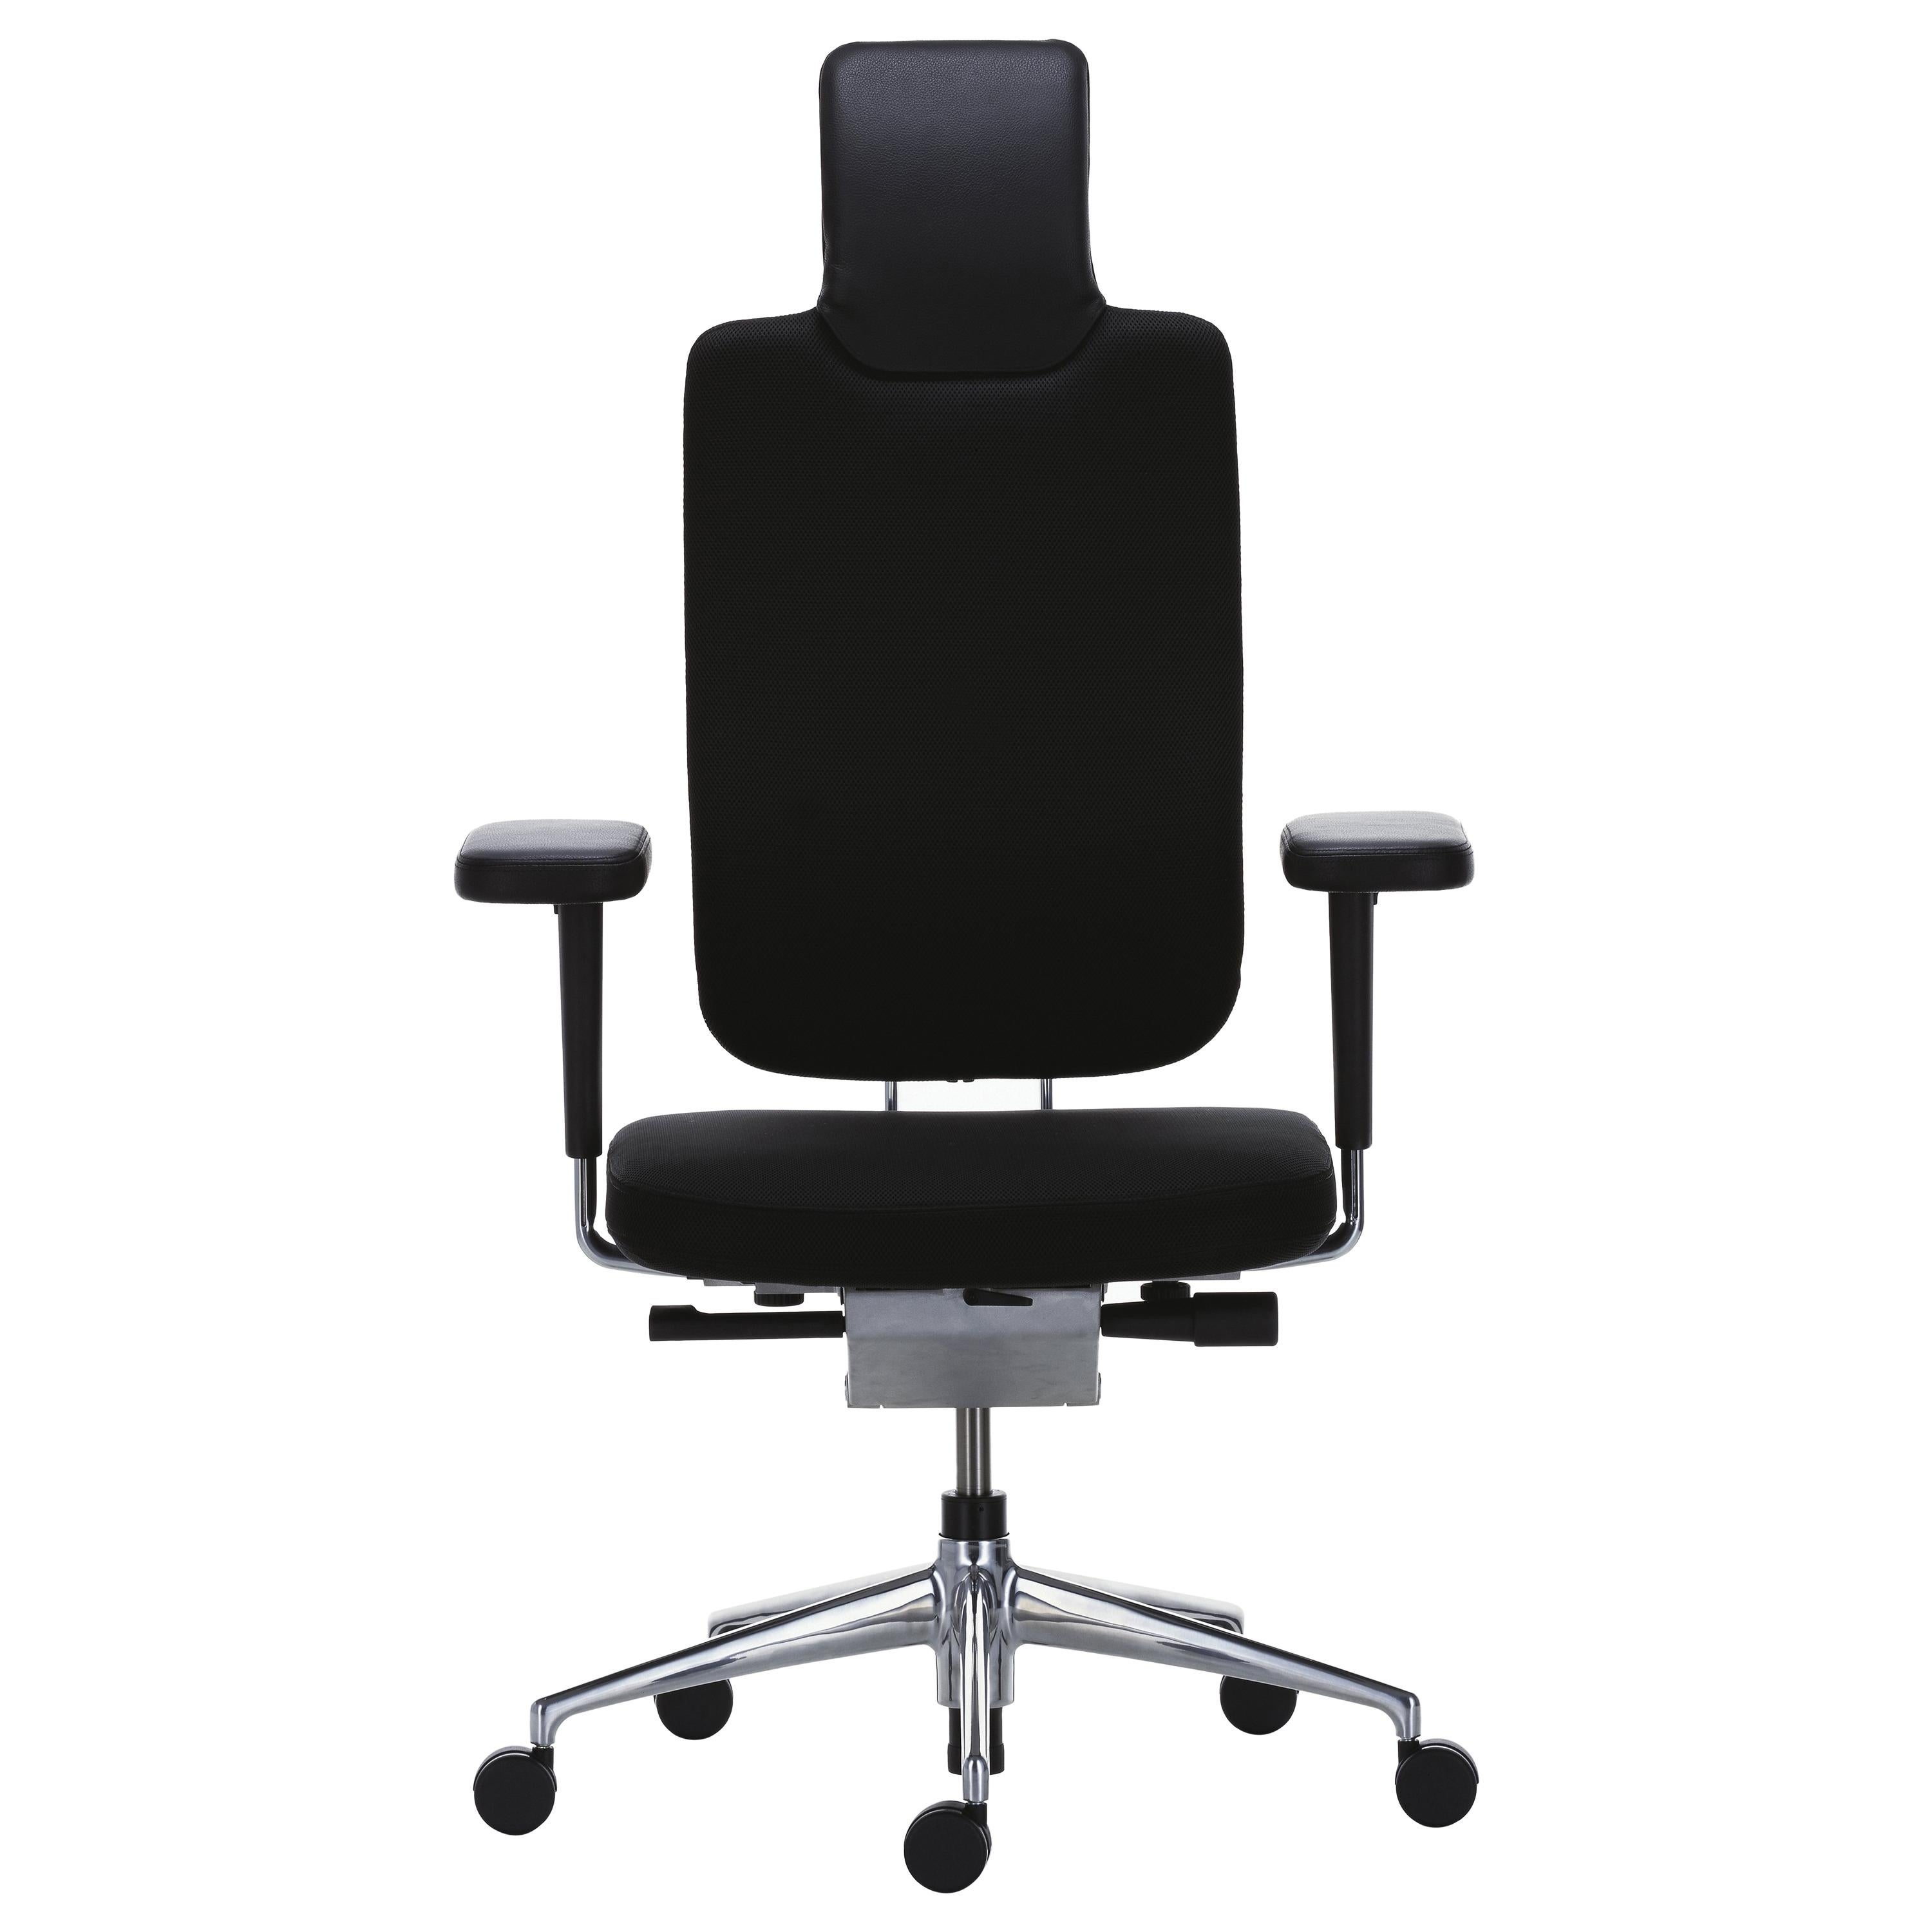 office chair for sale modern recliner vitra headline in black w leather details mario and claudio bellini